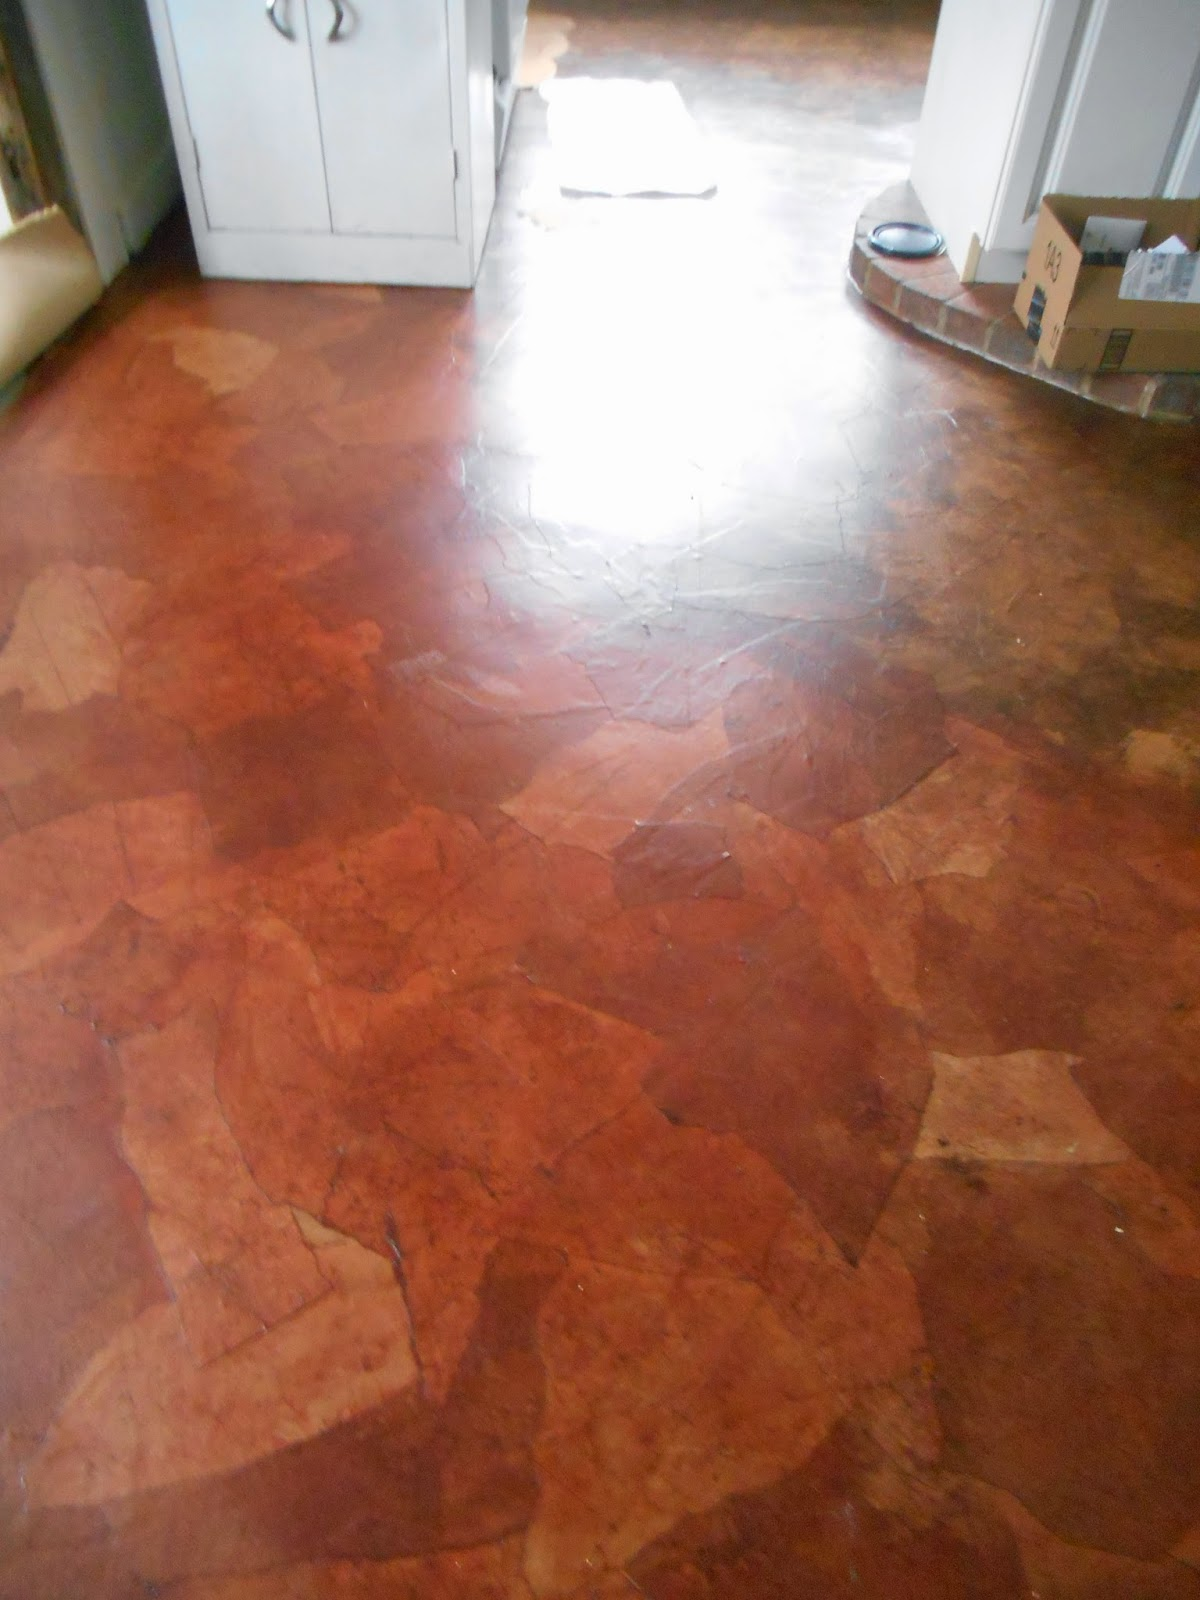 Living designs a paper bag floor over asbestos linoleum dailygadgetfo Images